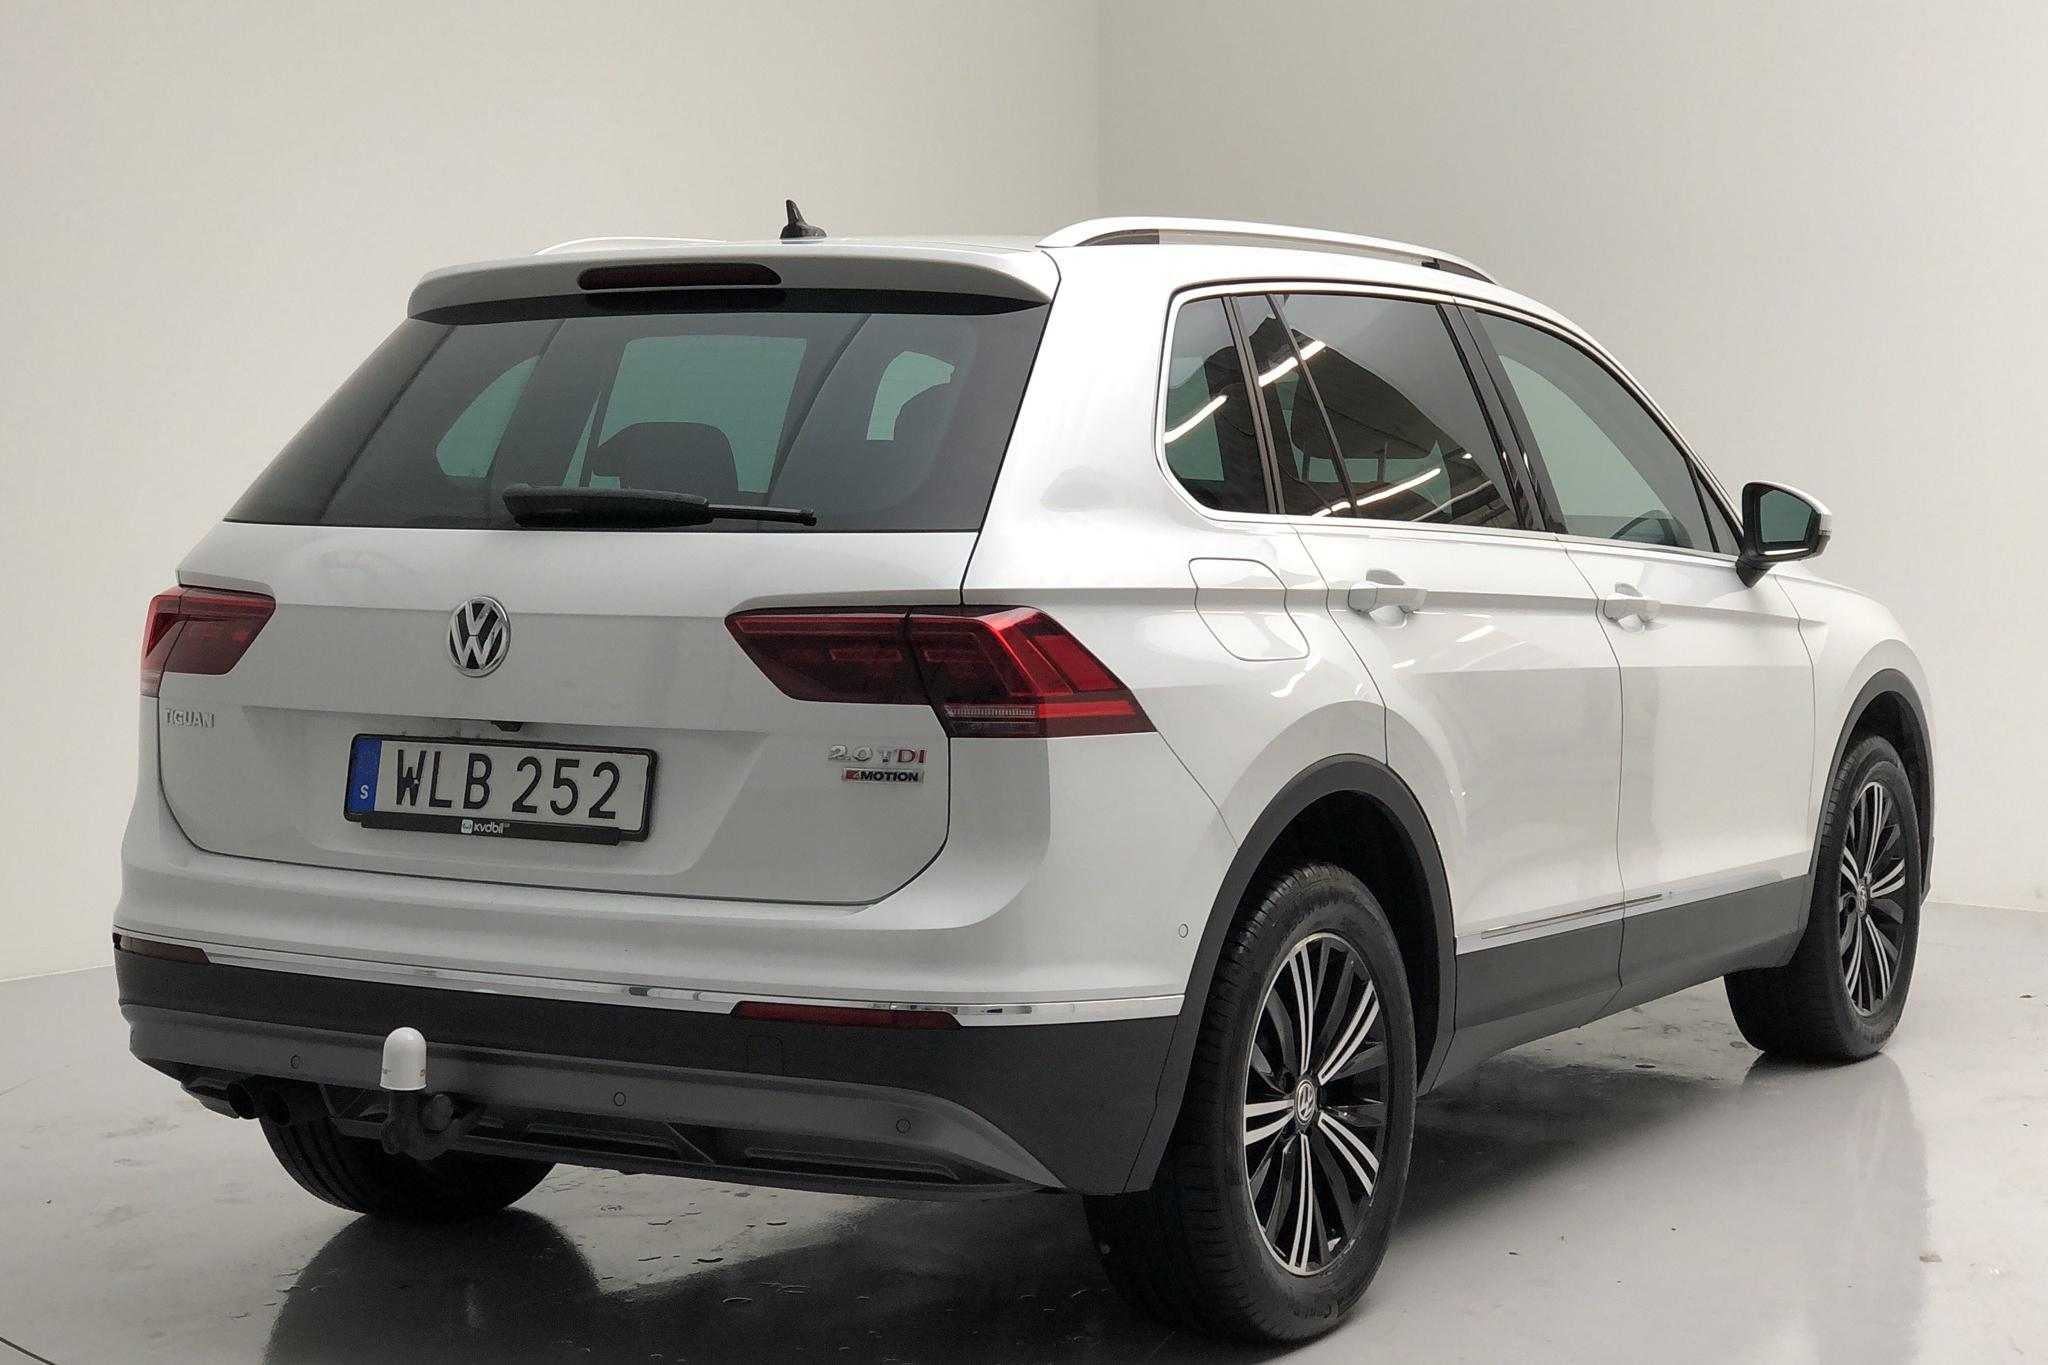 VW Tiguan 2.0 TDI 4MOTION (190hk) - 48 990 km - Automatic - white - 2018